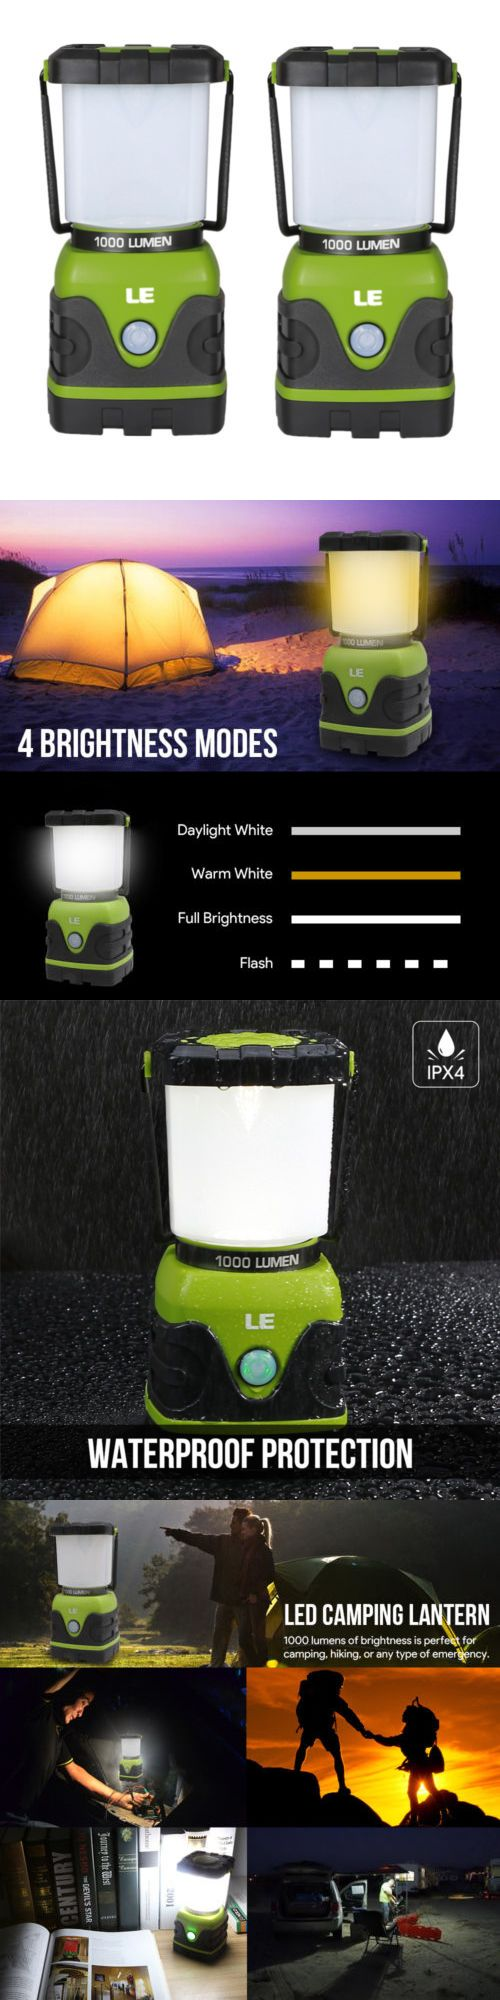 Lanterns 168867: 2Pcs Portable Led Camping Lantern For Home Garden Outdoor Hiking Emergency -> BUY IT NOW ONLY: $39.98 on eBay!